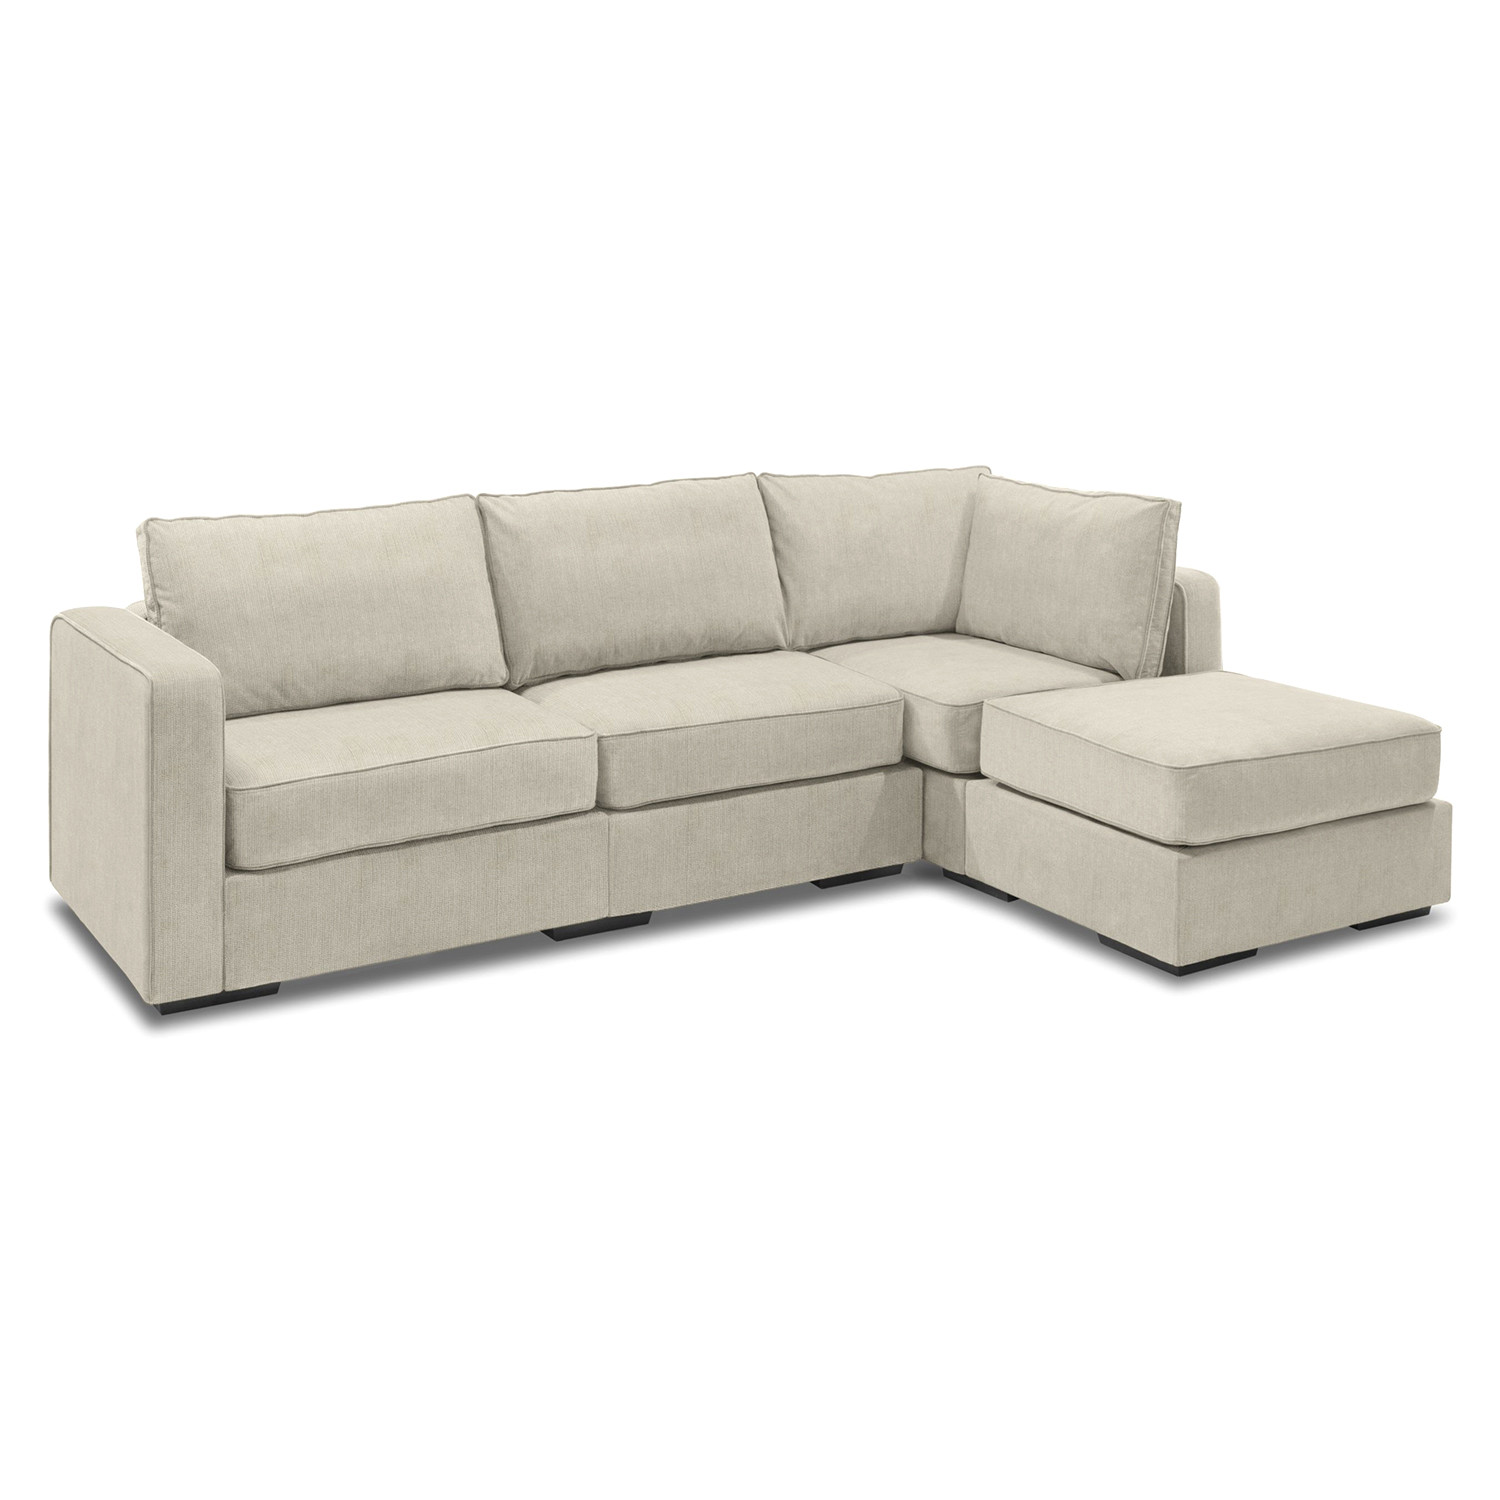 love sac chair leather easy 5 series sactionals chaise sectional taupe lovesac